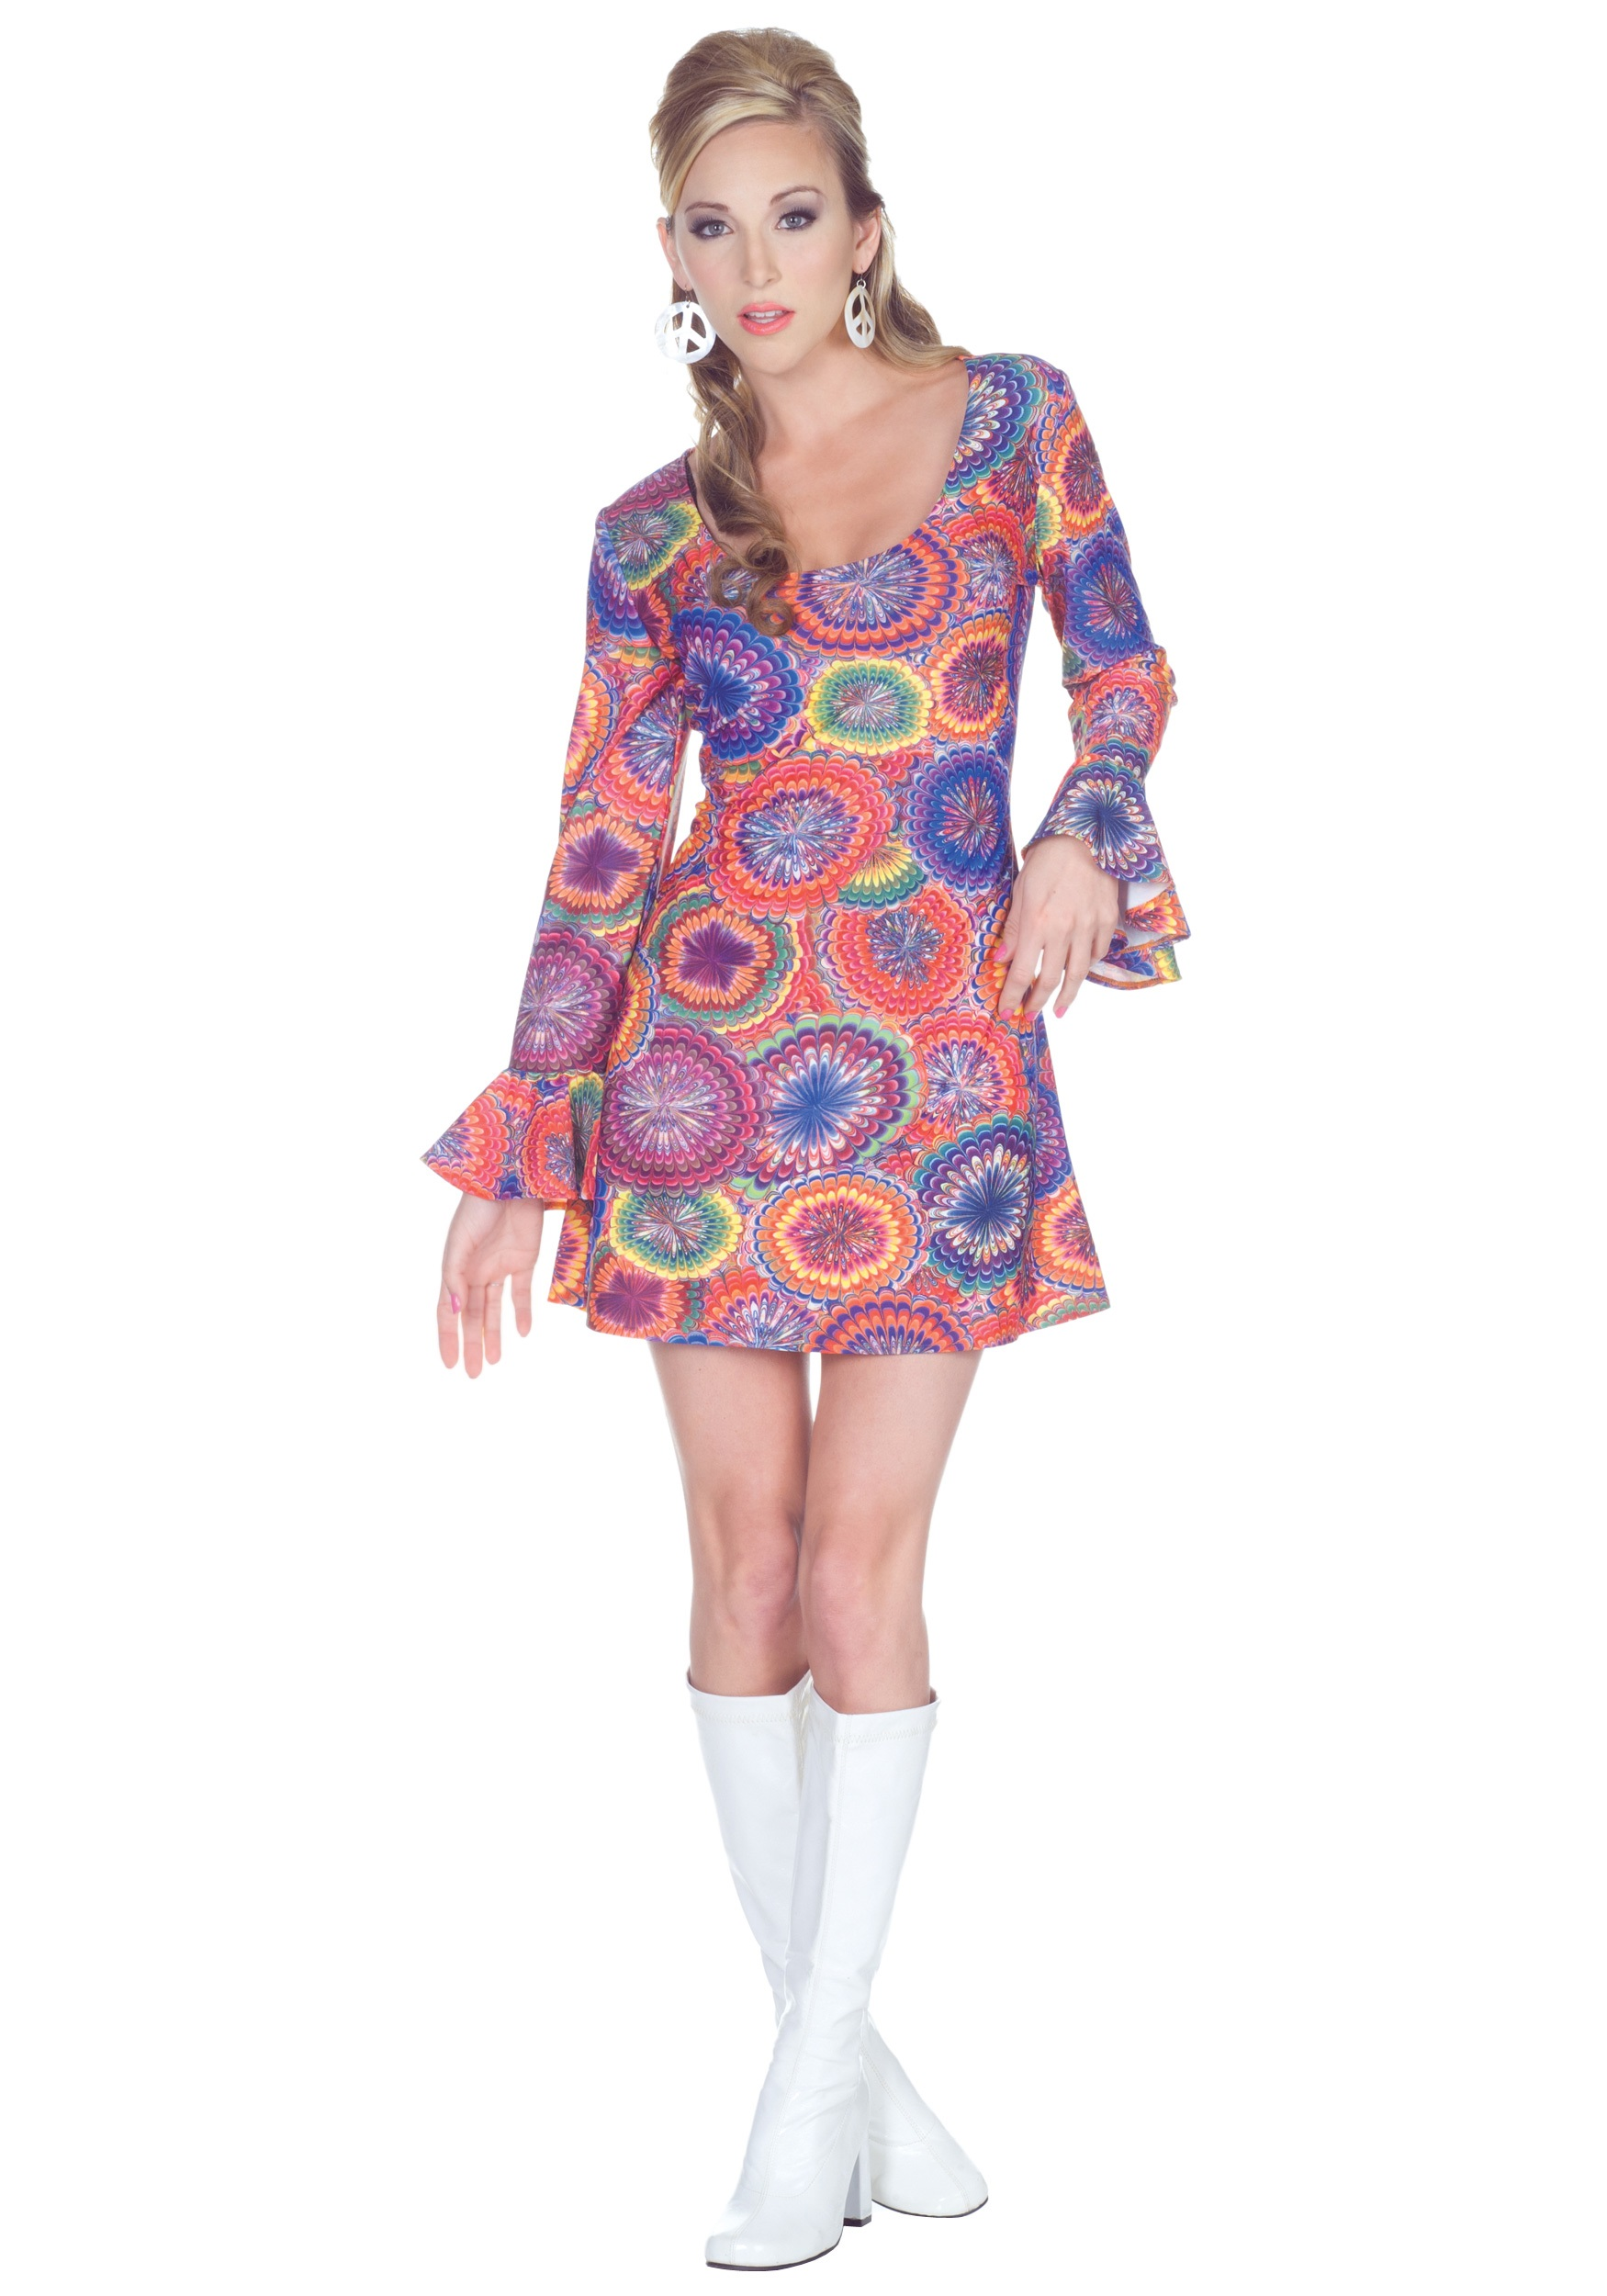 70s Sexy Psychedelic Dress - Halloween Costume Ideas 2016